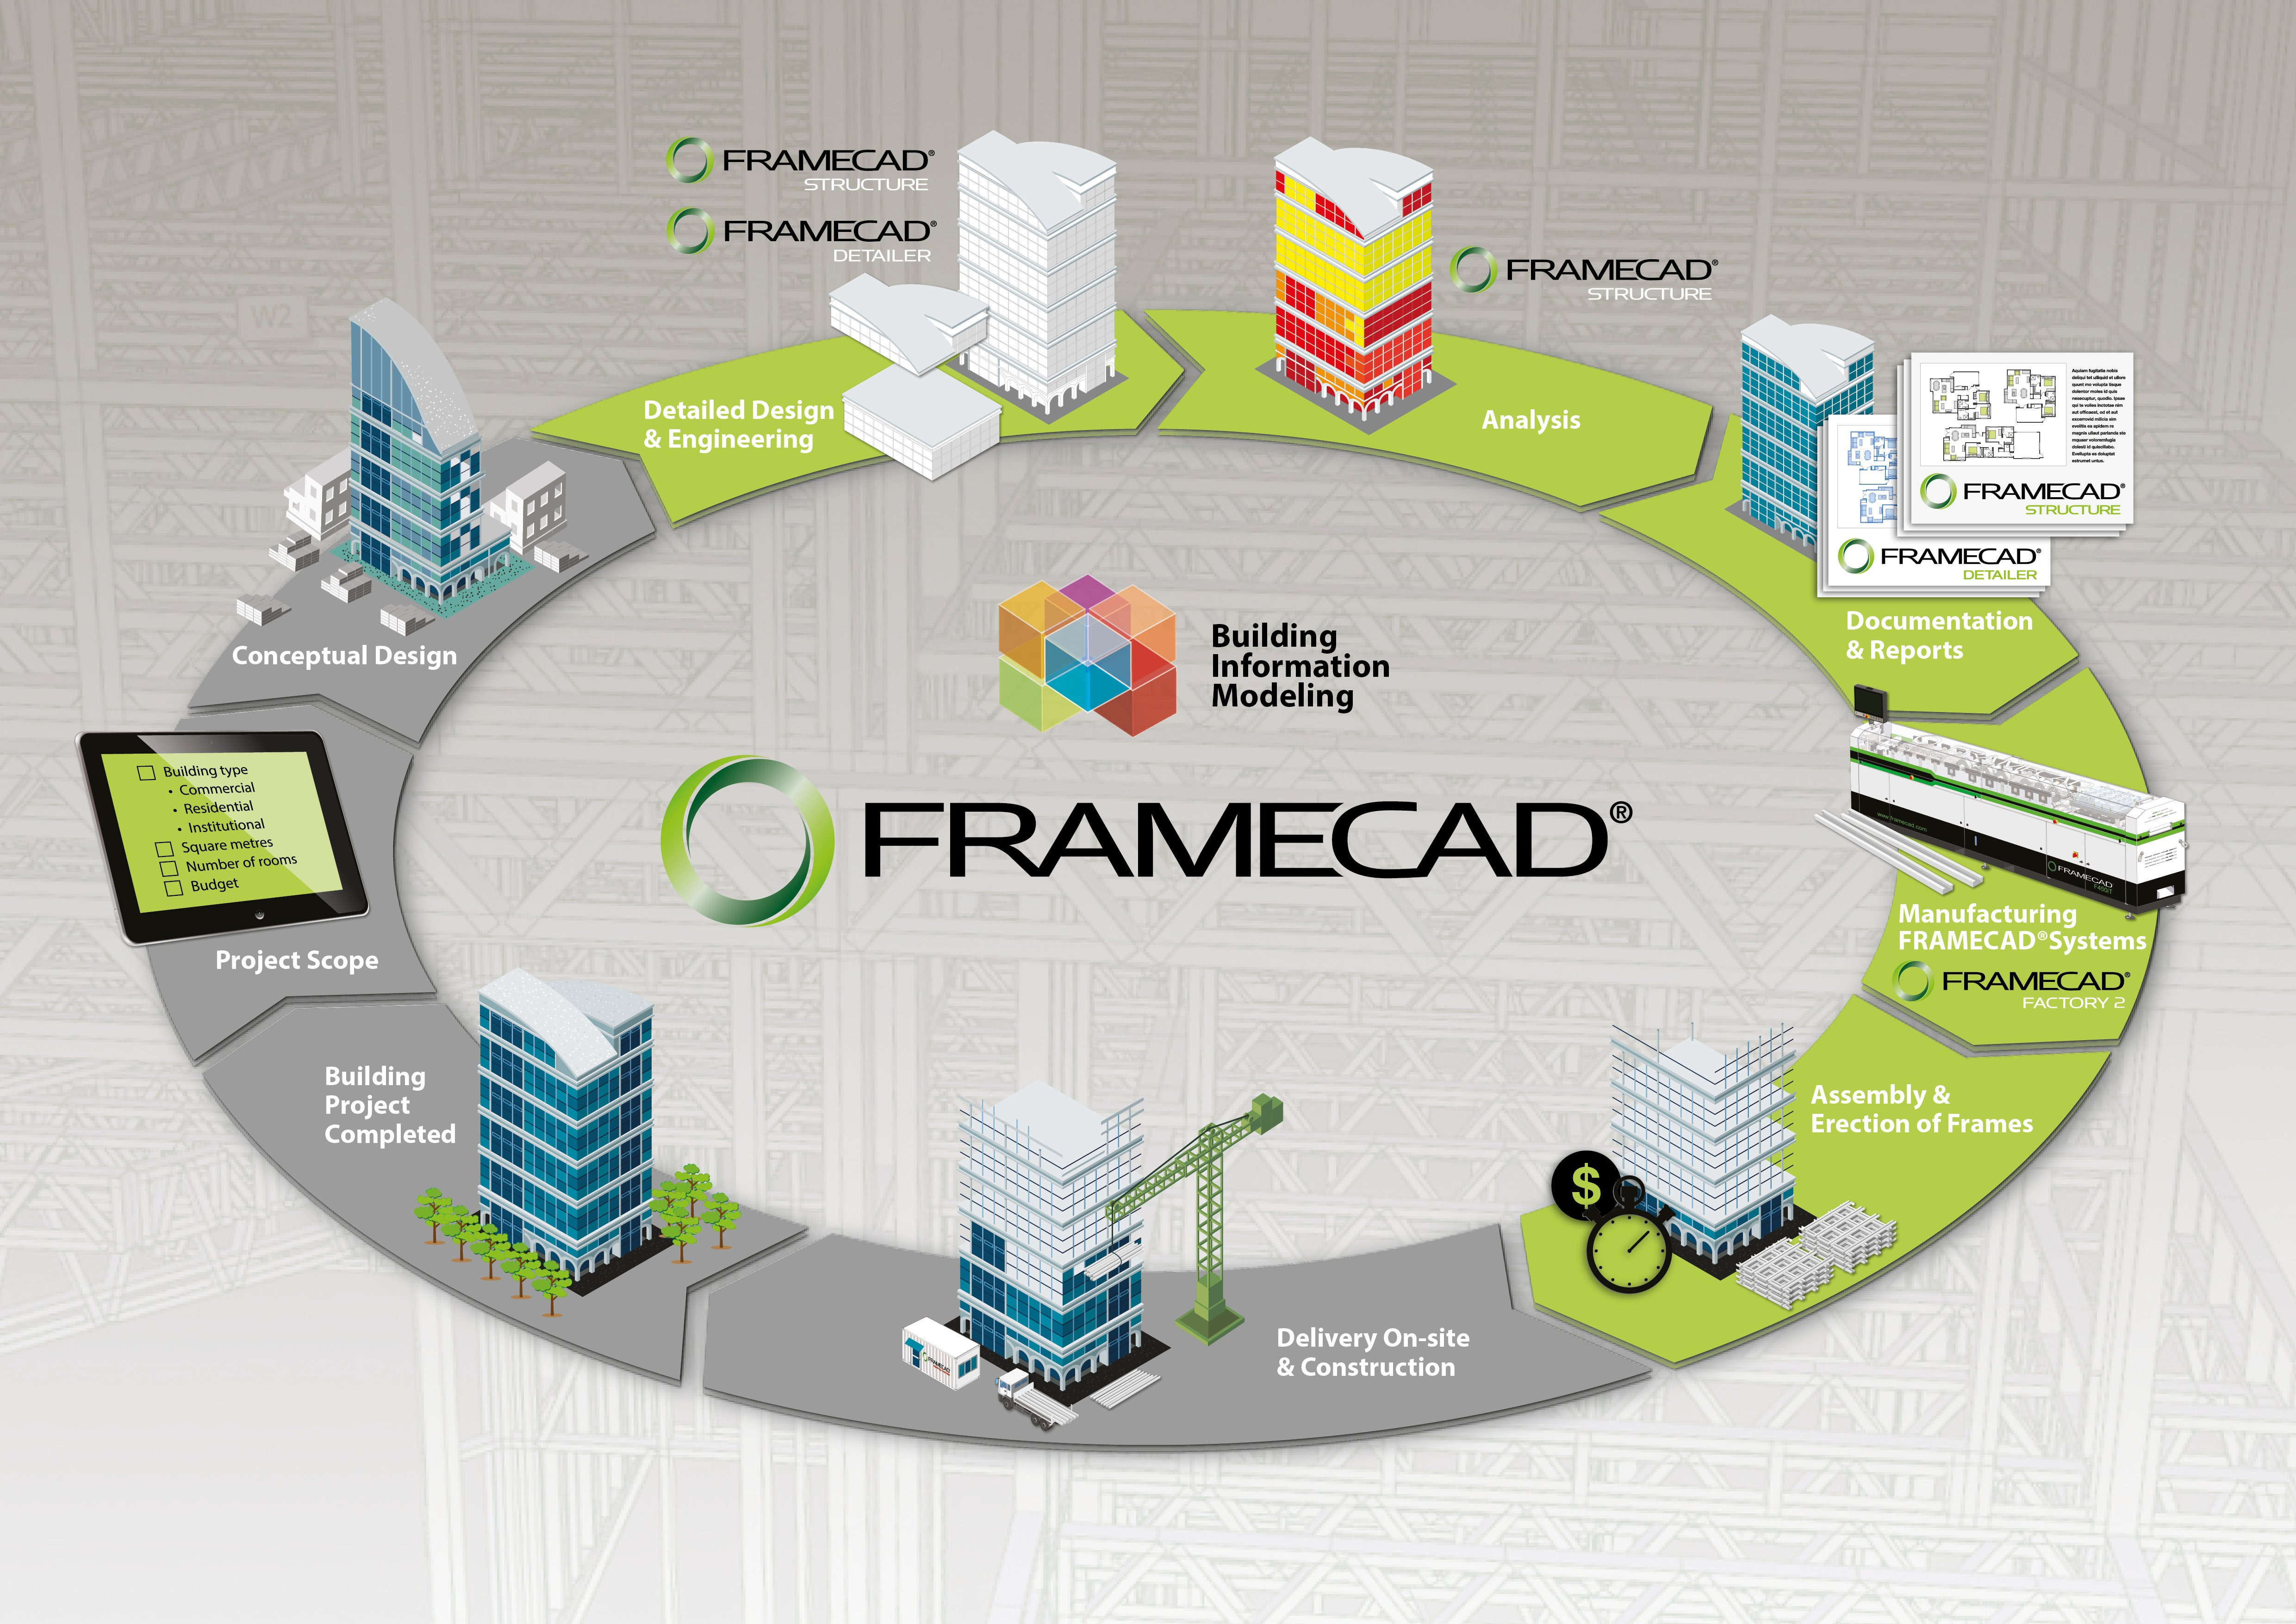 Framecad Complete End To End Cfs System With Advanced Engineering Design Software Manufacturing Technology And A Global Support Network